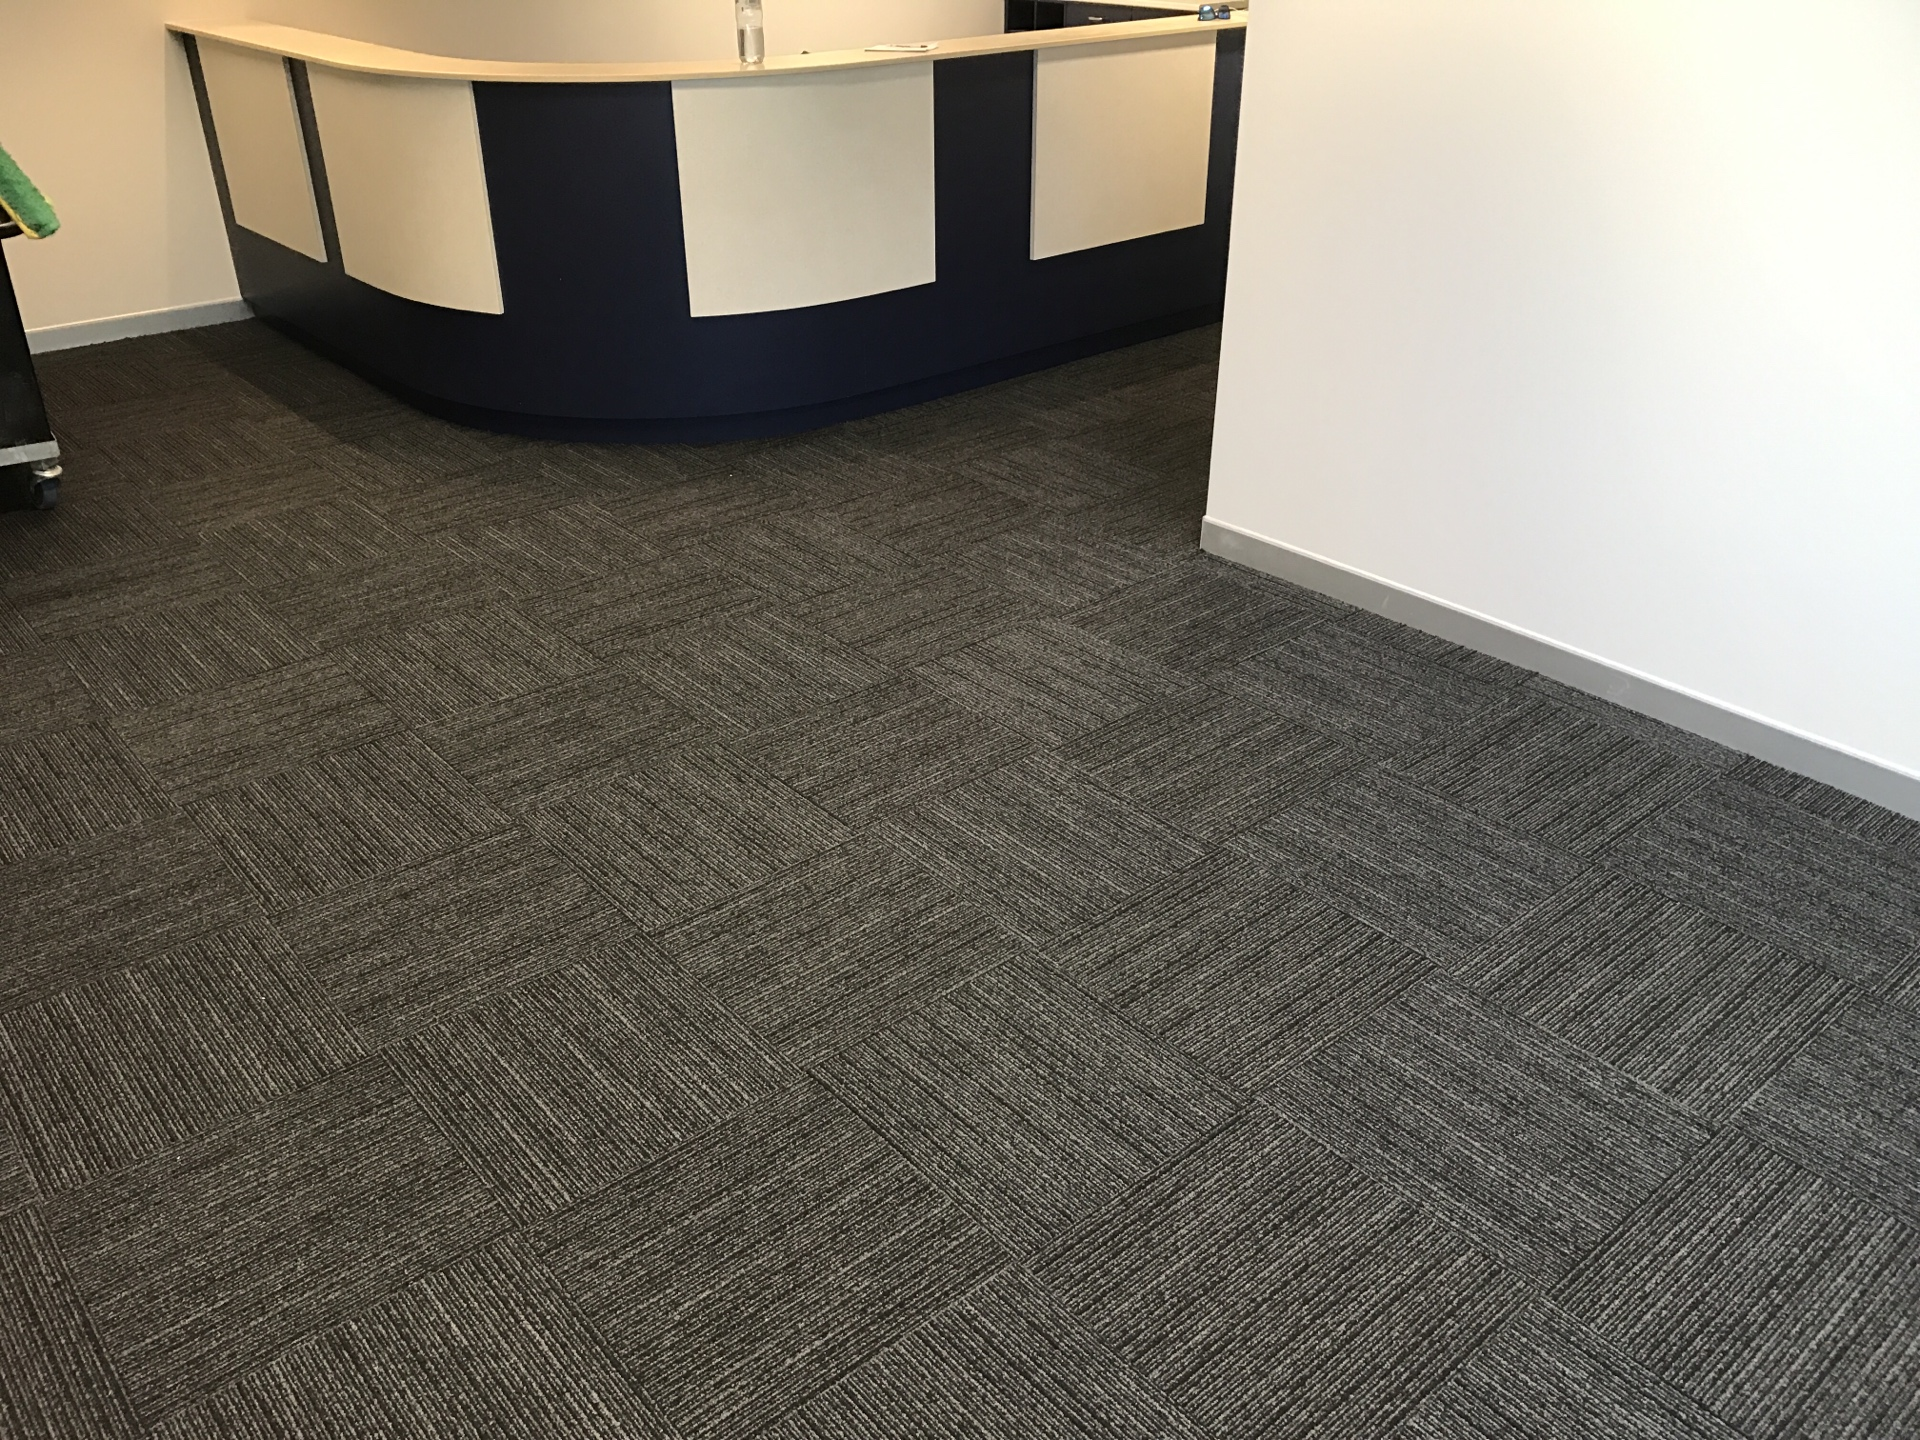 Image of: Commercial Carpet Tiles For Your Office Floorwerx Gold Coast